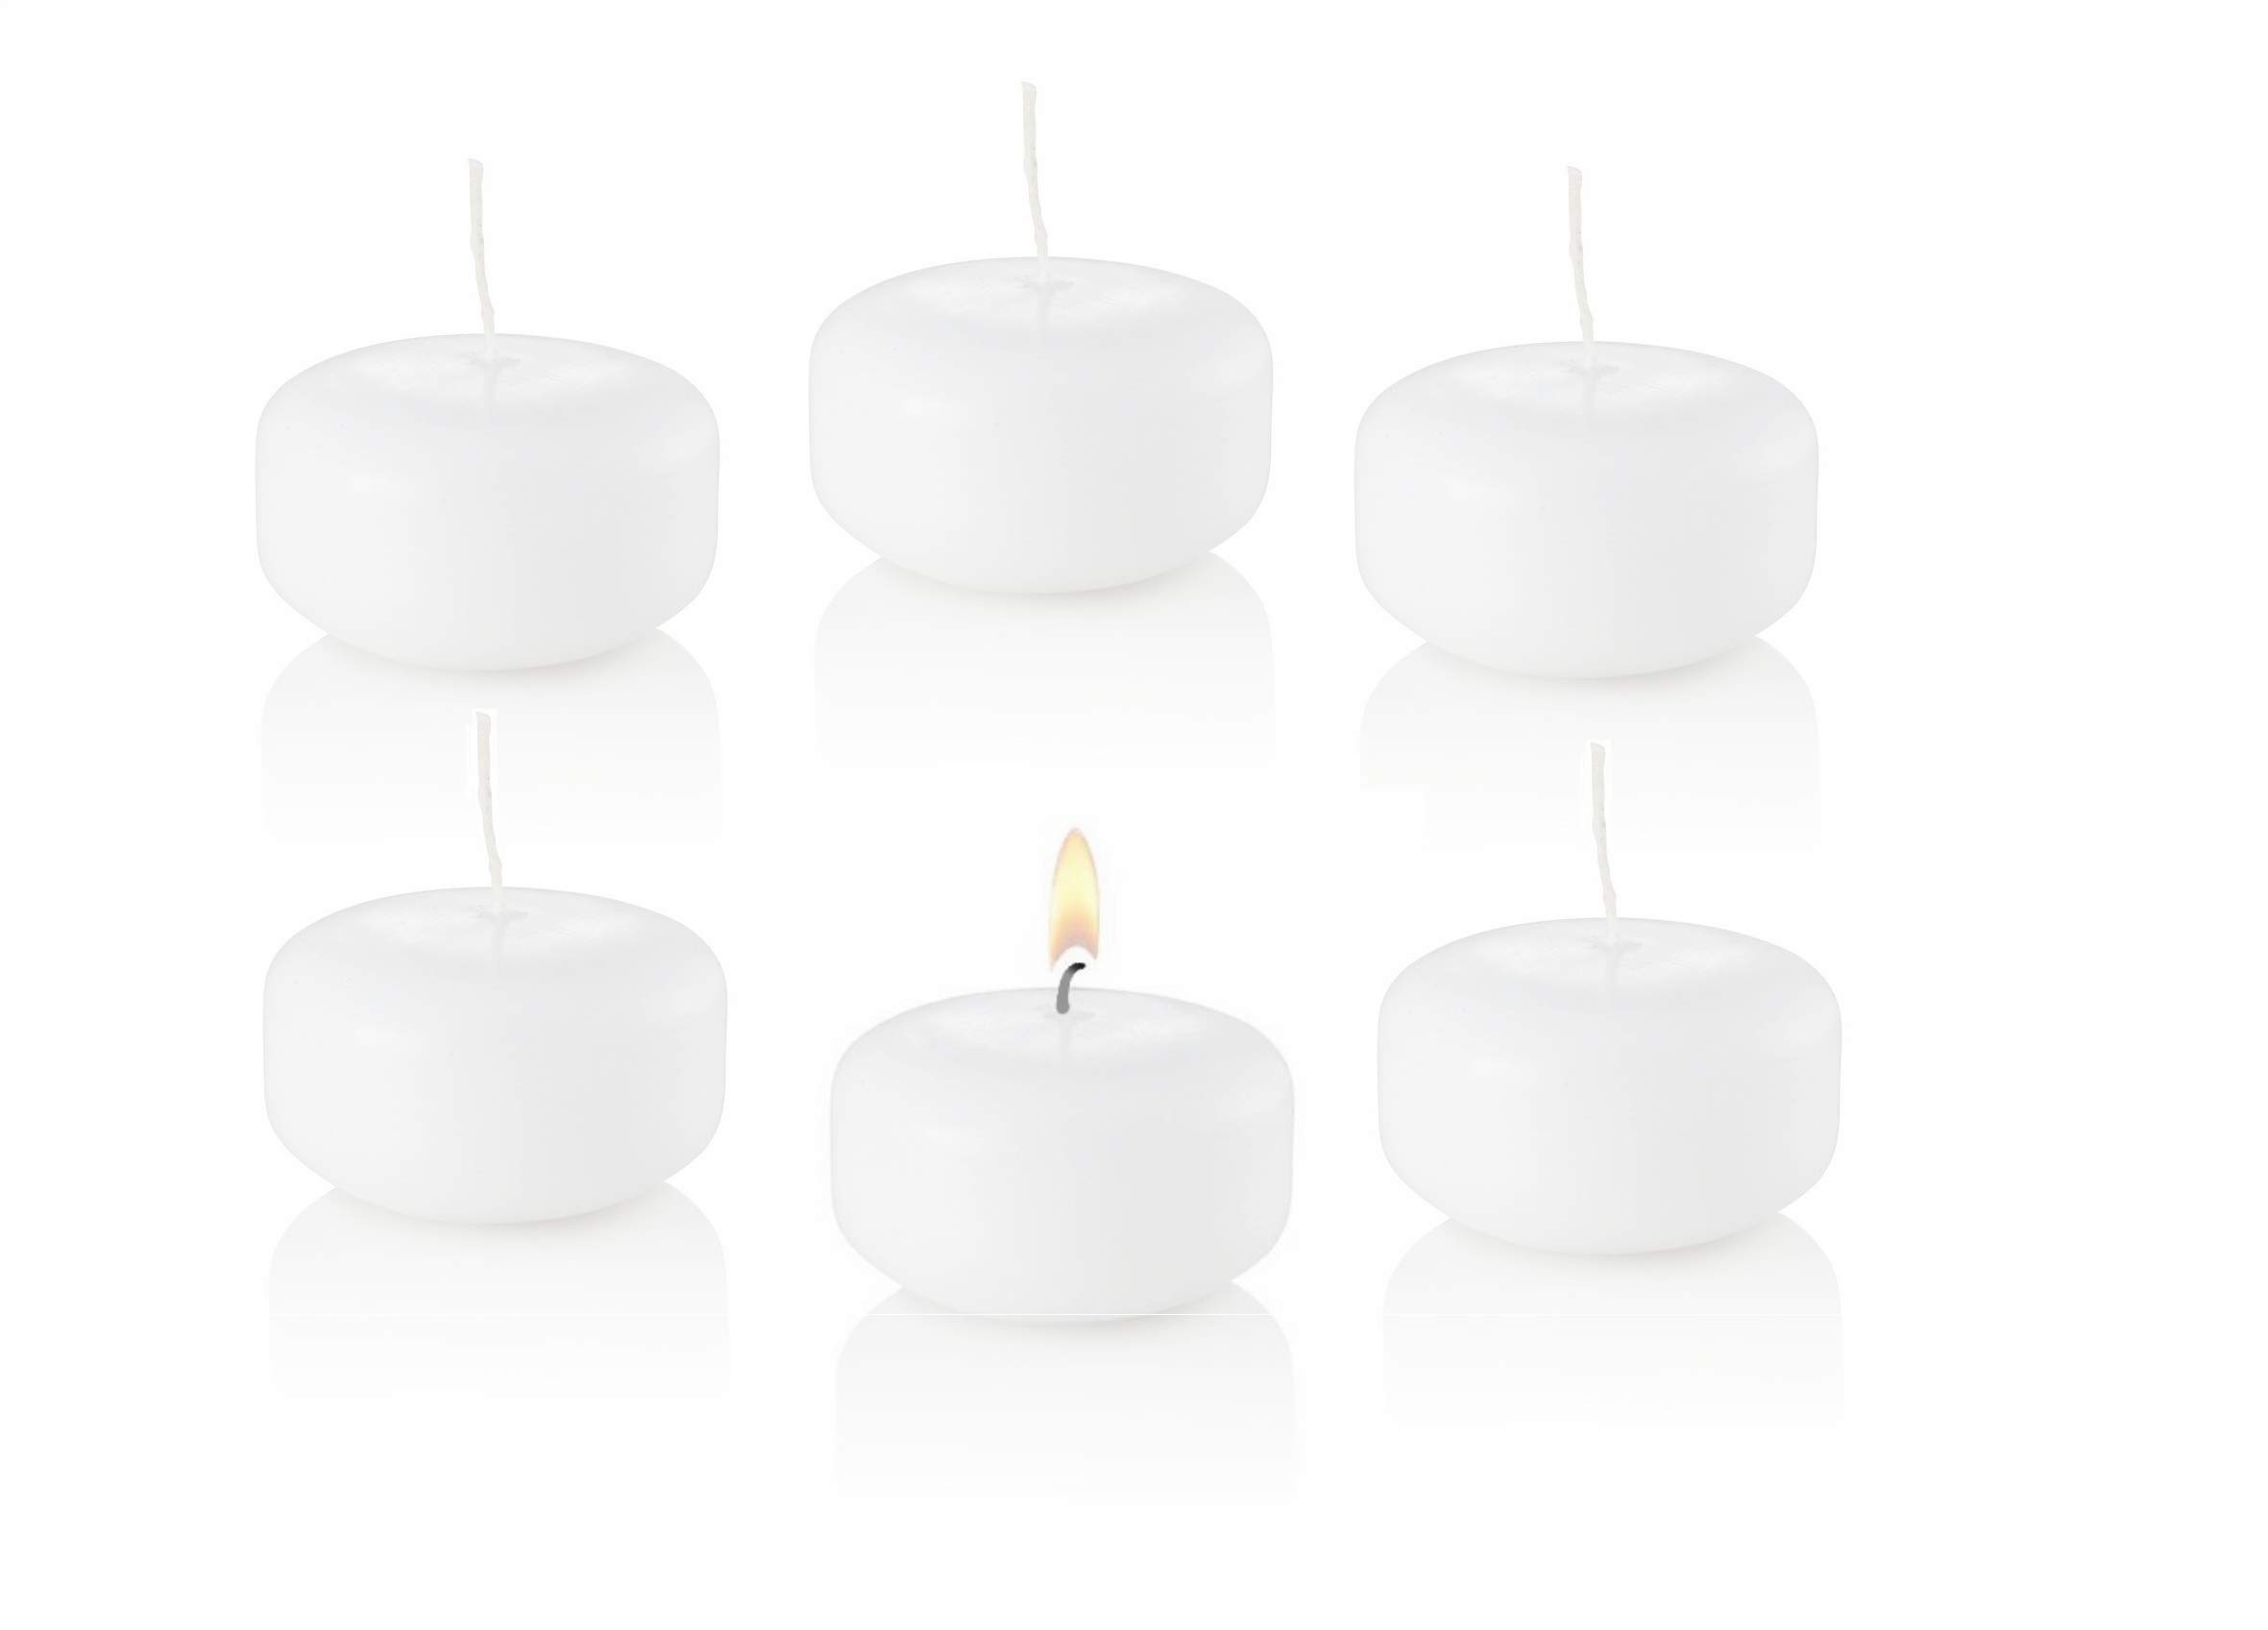 D'light Online Small 2 Inch Bulk Event Pack Floating Candles for Weddings, Spa, Home Decor, Special Occasions and Holiday Decorations (Set of 144, White)